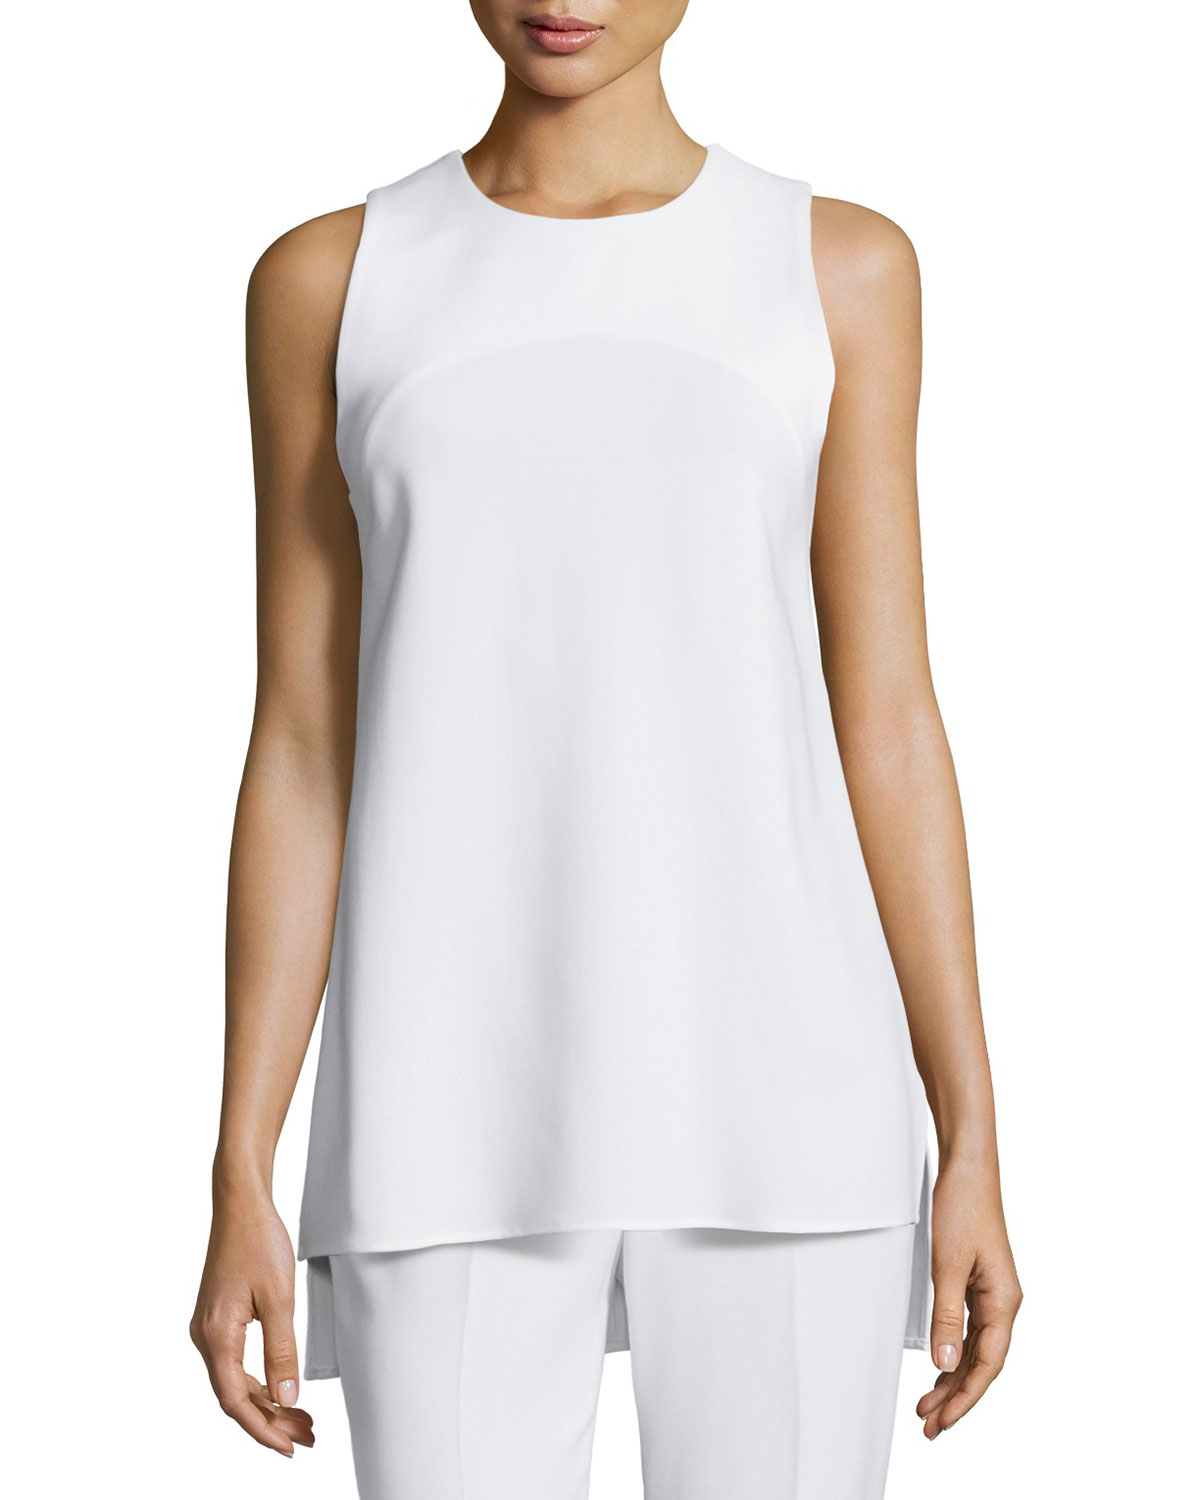 Parieom Sleeveless Jewel-Neck Top, Eggshell